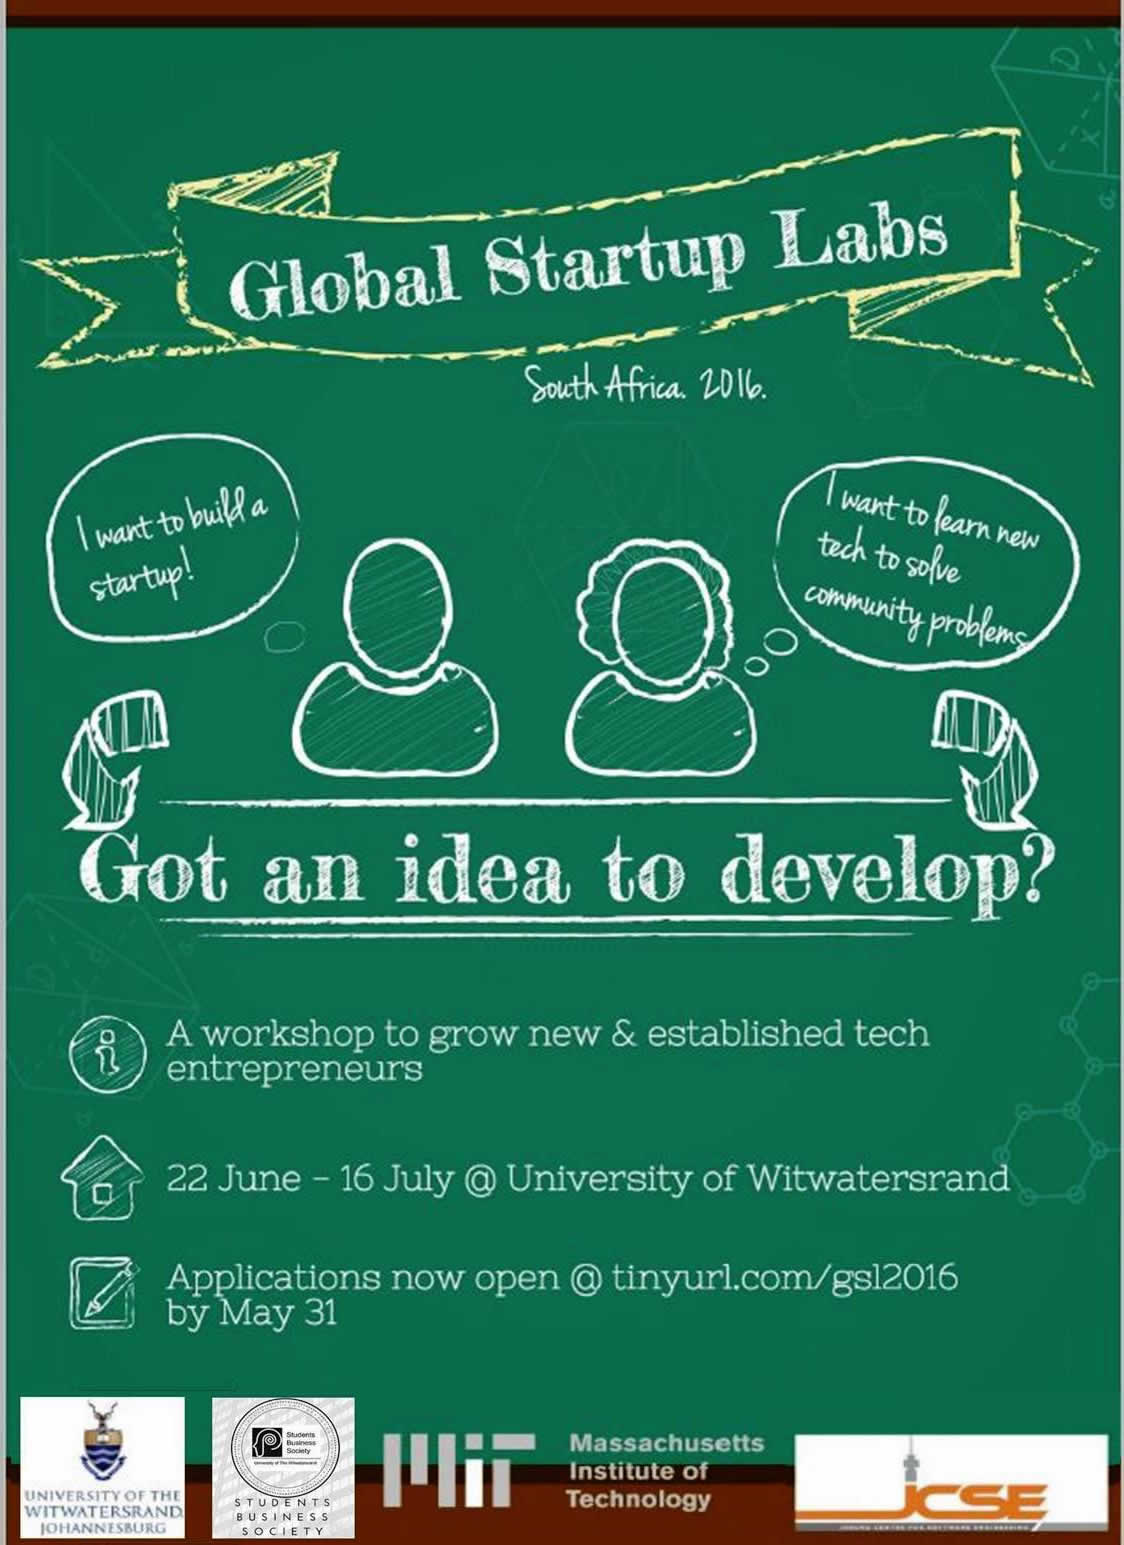 Applications now open for MIT Global Startup Labs